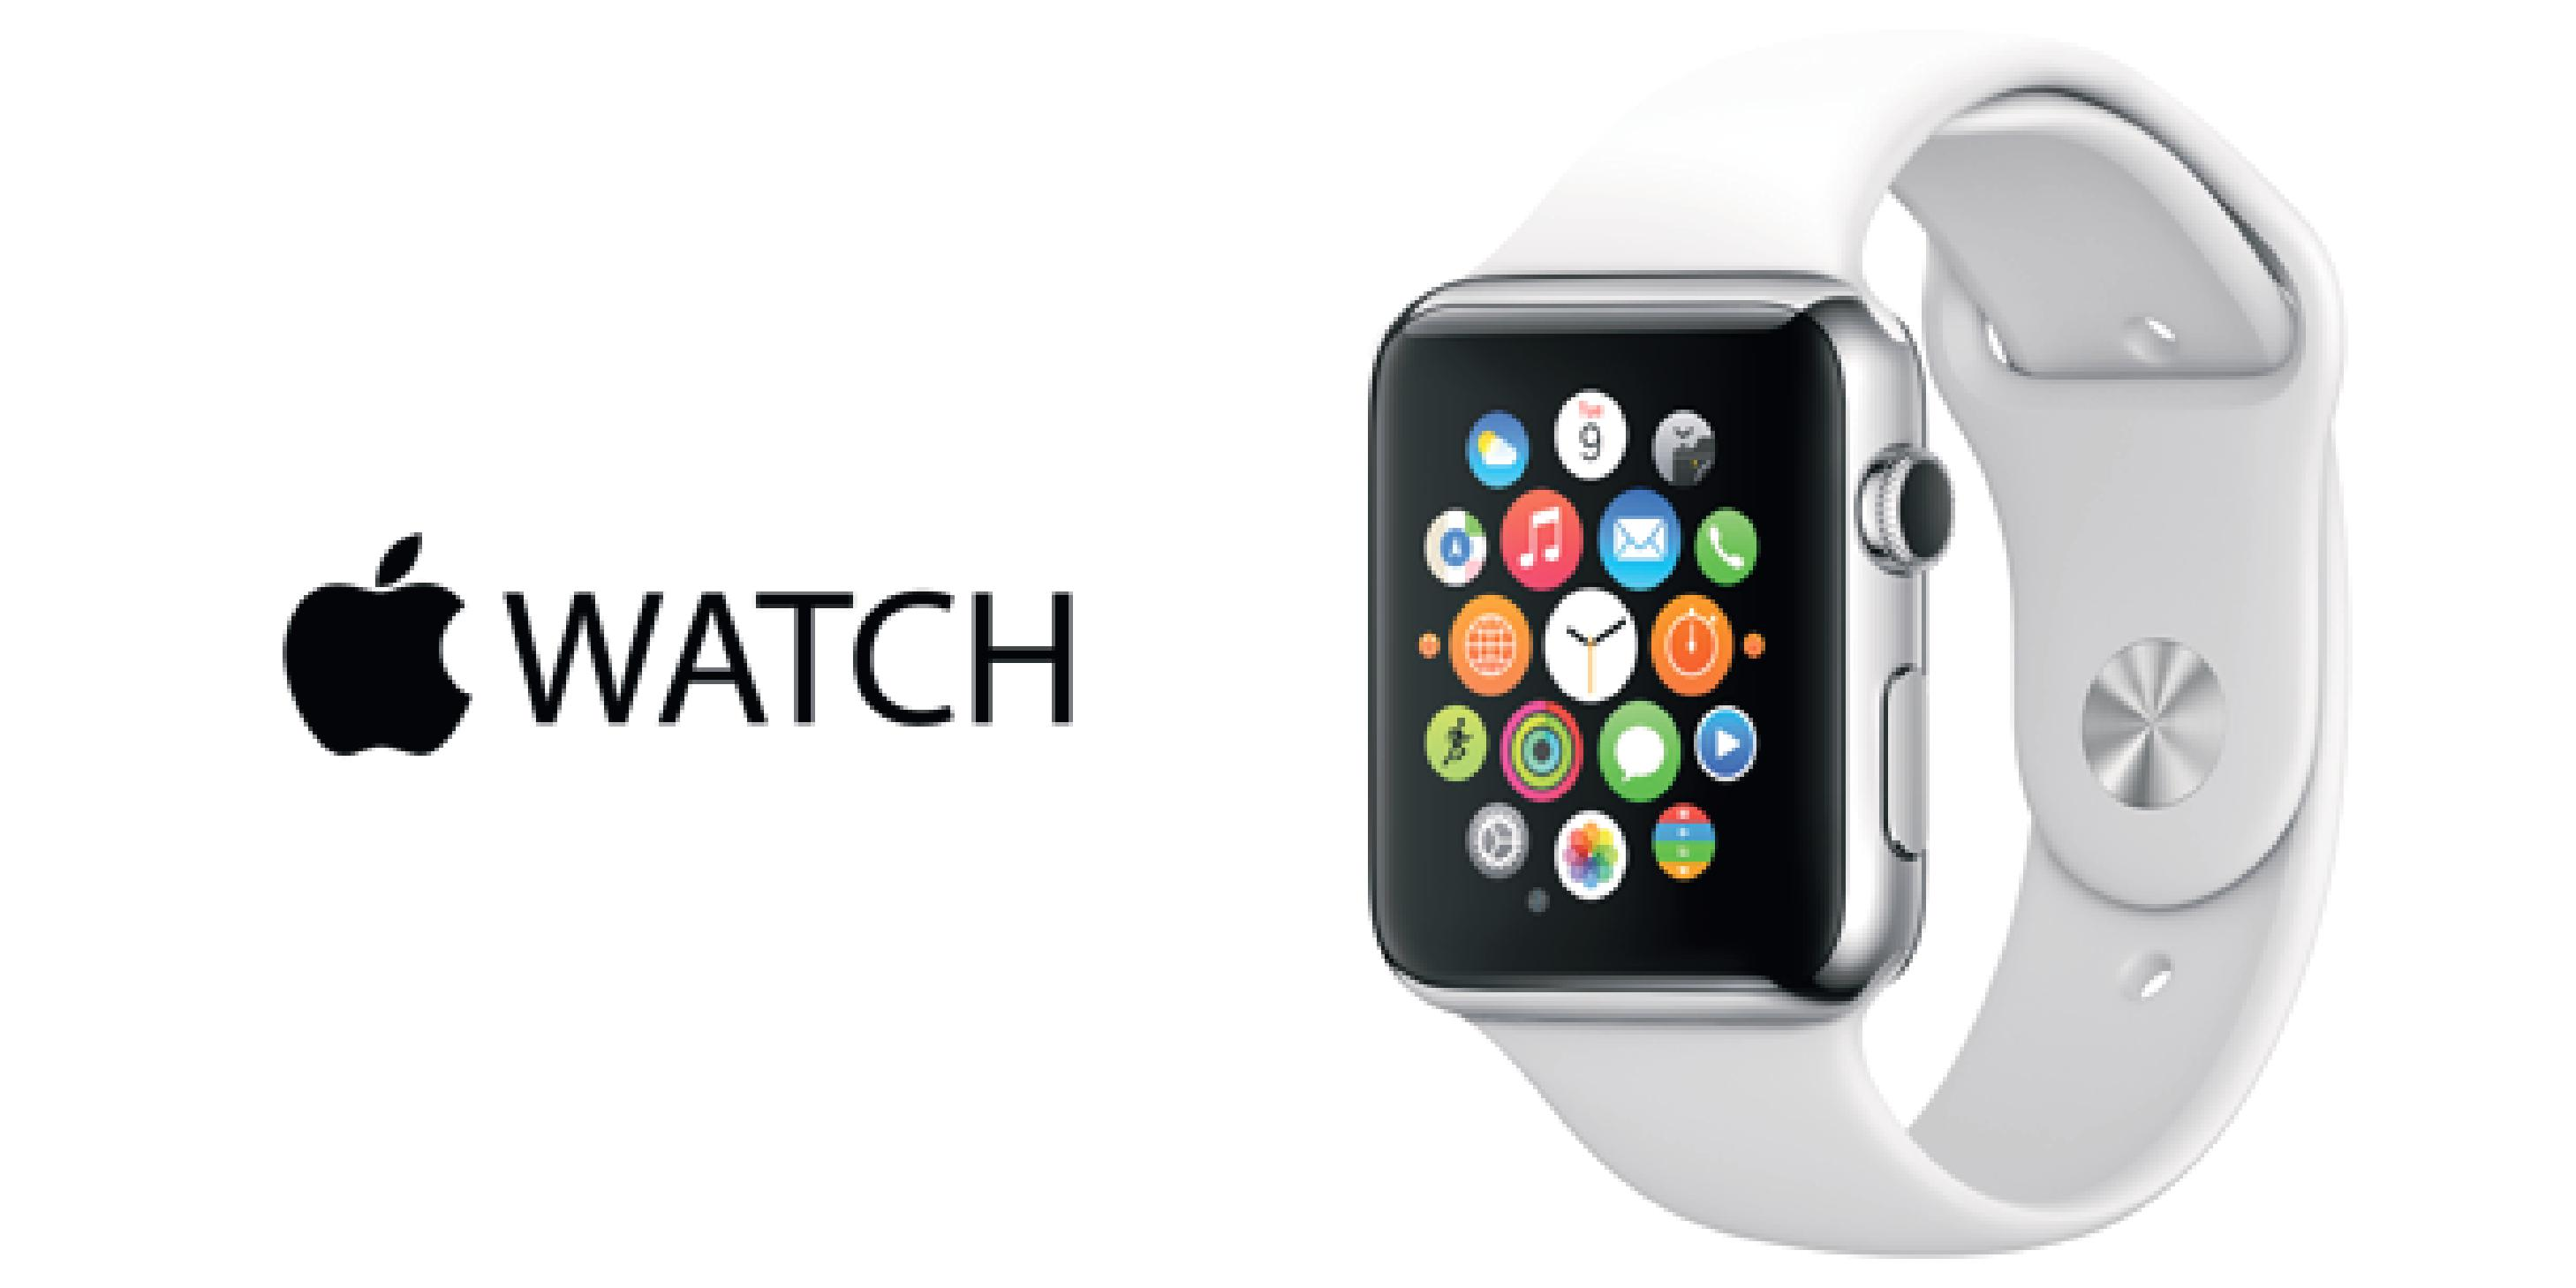 Apple Watch to be sold at Best Buy stores from August